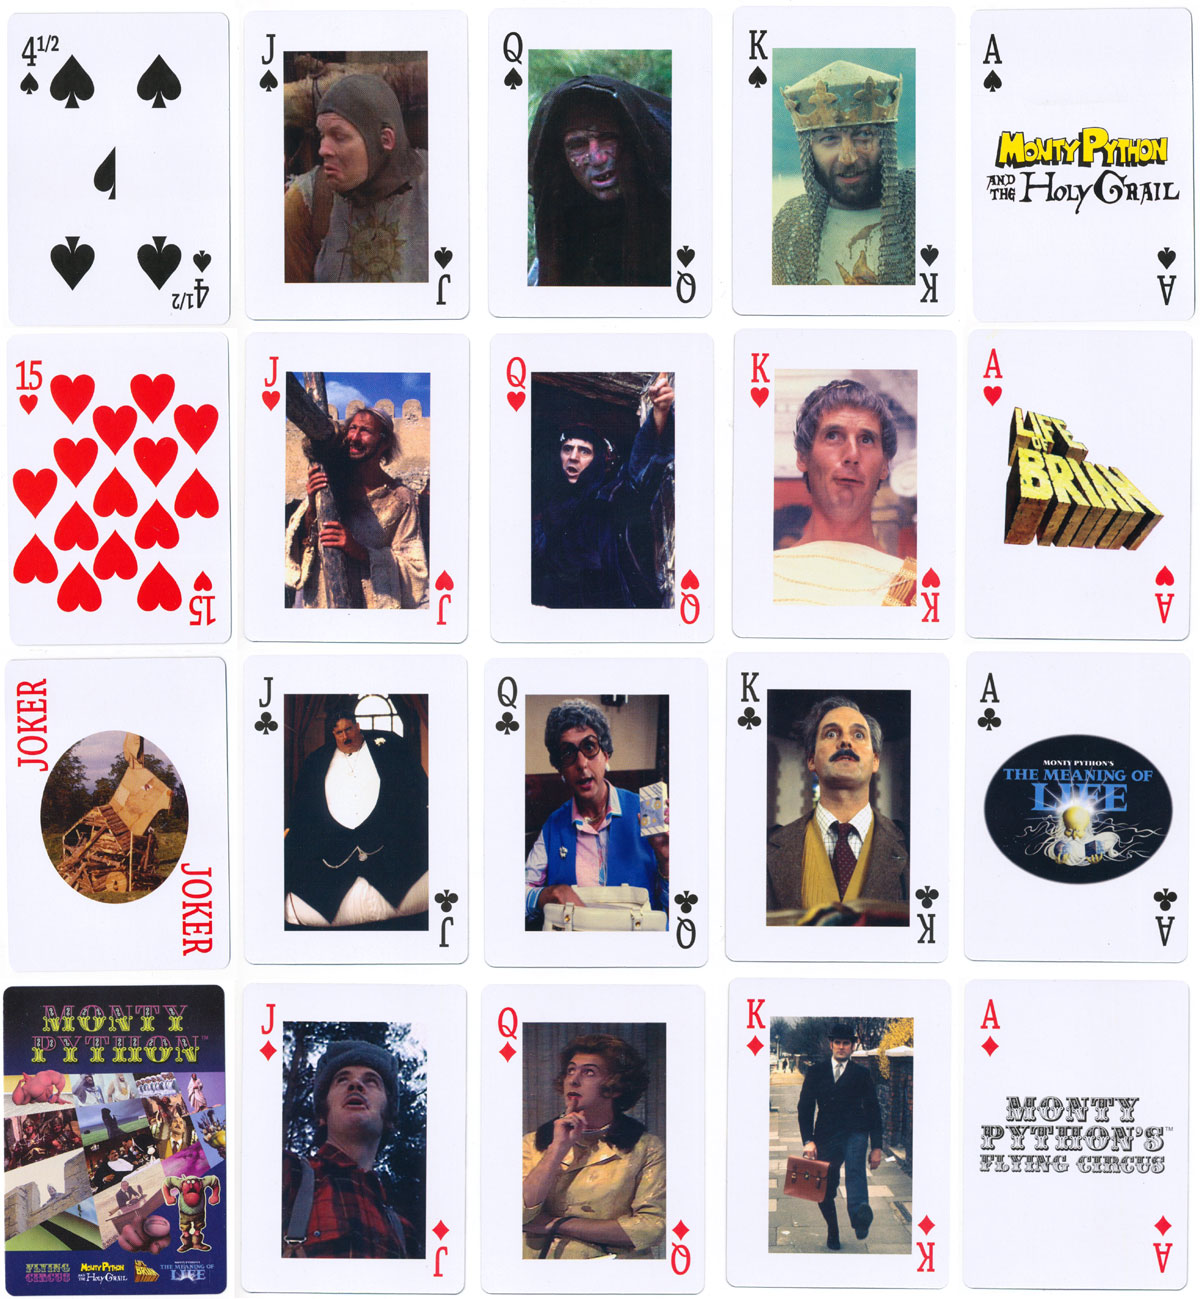 Monty Python playing cards marketed by 're:creation' and made in China